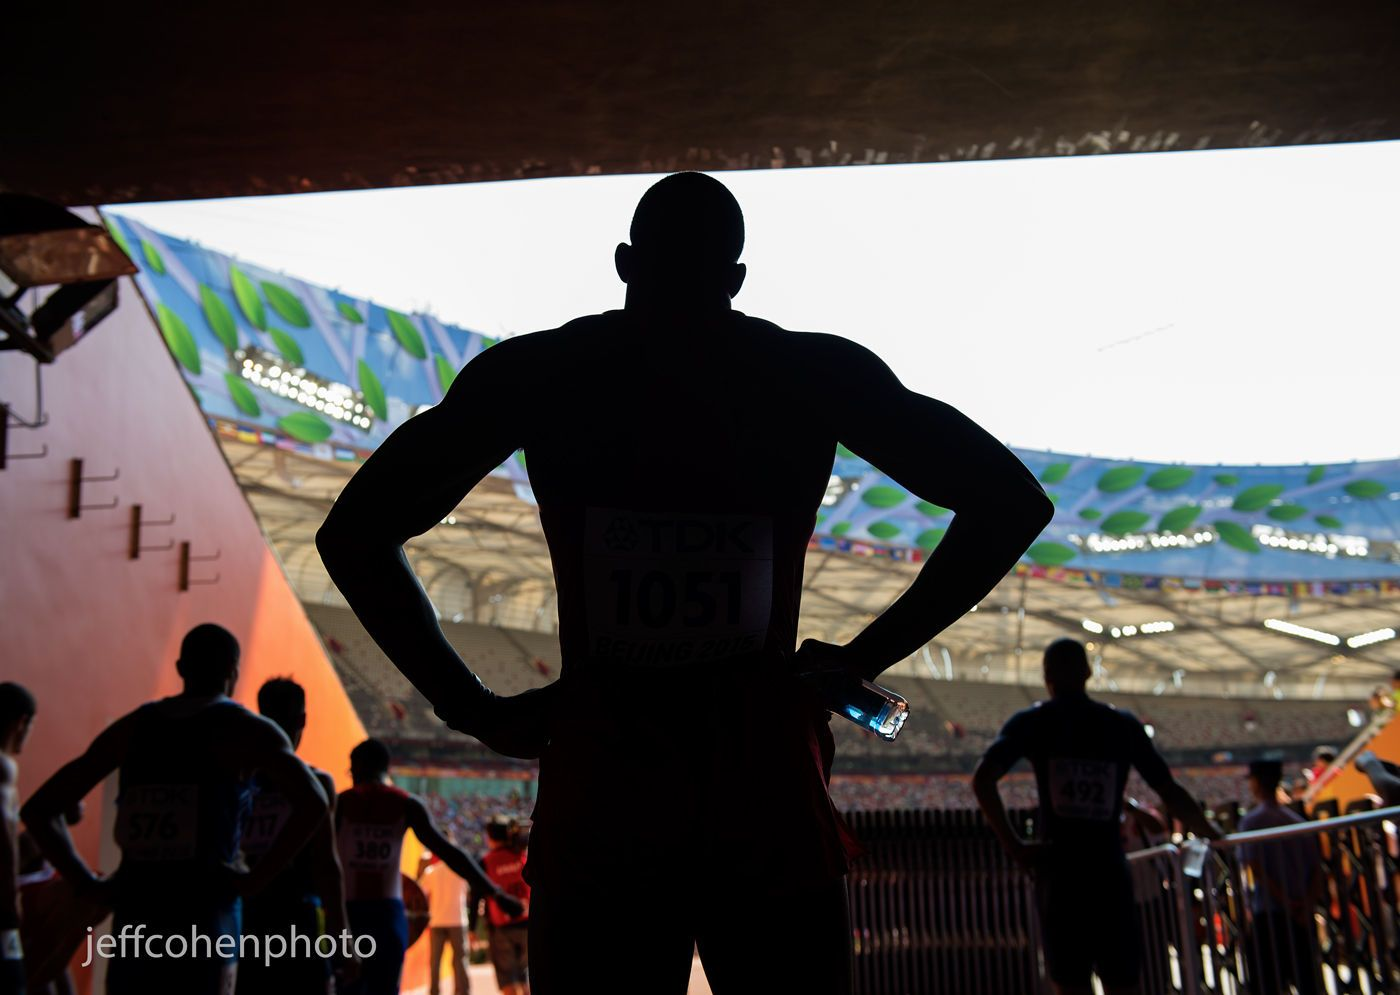 1beijing2015_day_5_david_oliver_shadow_110h_jeff_cohen_photo_18767_web.jpg